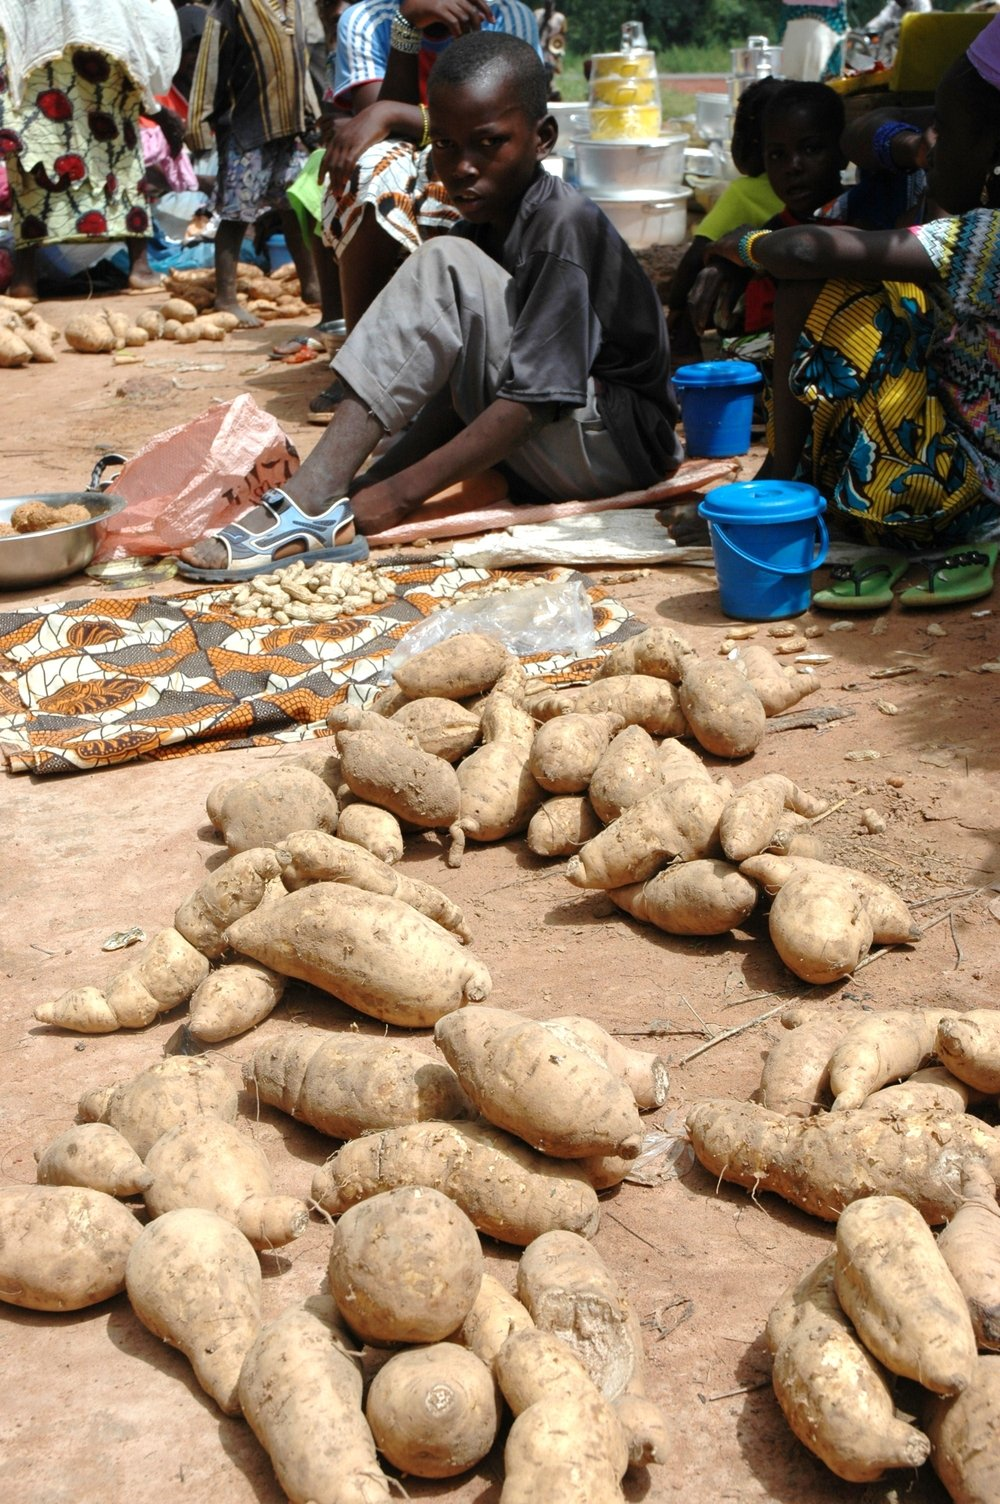 Locally grown potatoes in Sikasso, Mali will not stay here long- most are destined to be purchased by people from the capital or neighbouring countries. Sixteen percent of under-five children in Sikasso are acutely malnourished despite the region's status